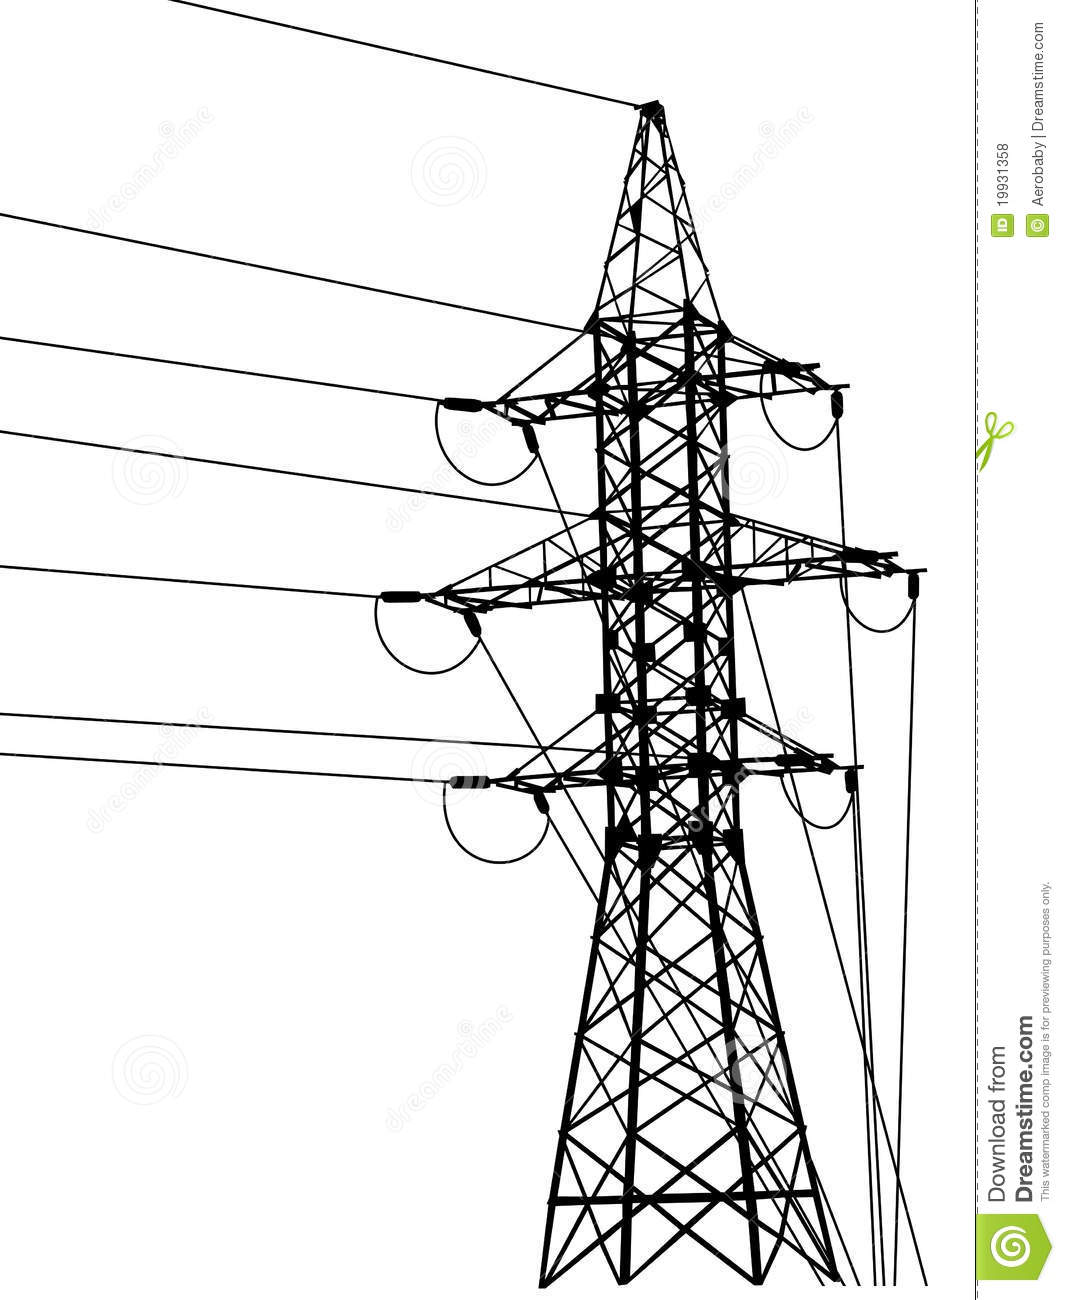 High-voltage Tower Silhouette. Royalty Free Stock Photos